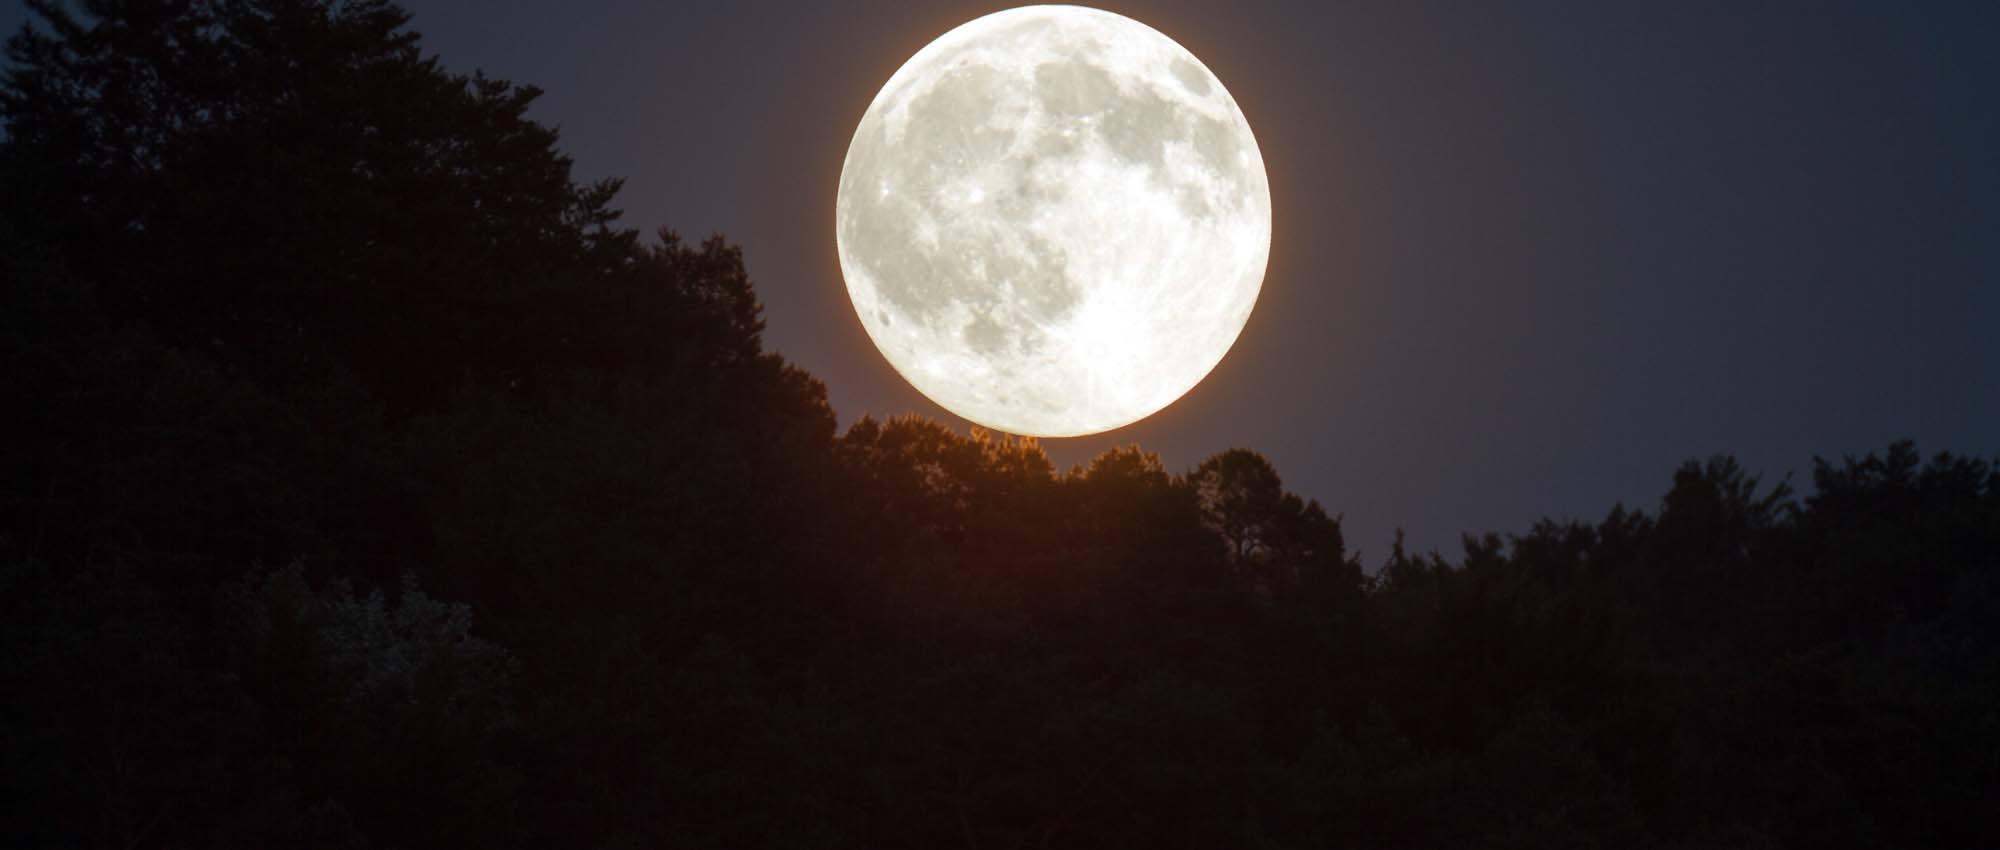 Full Moon in sky over forest